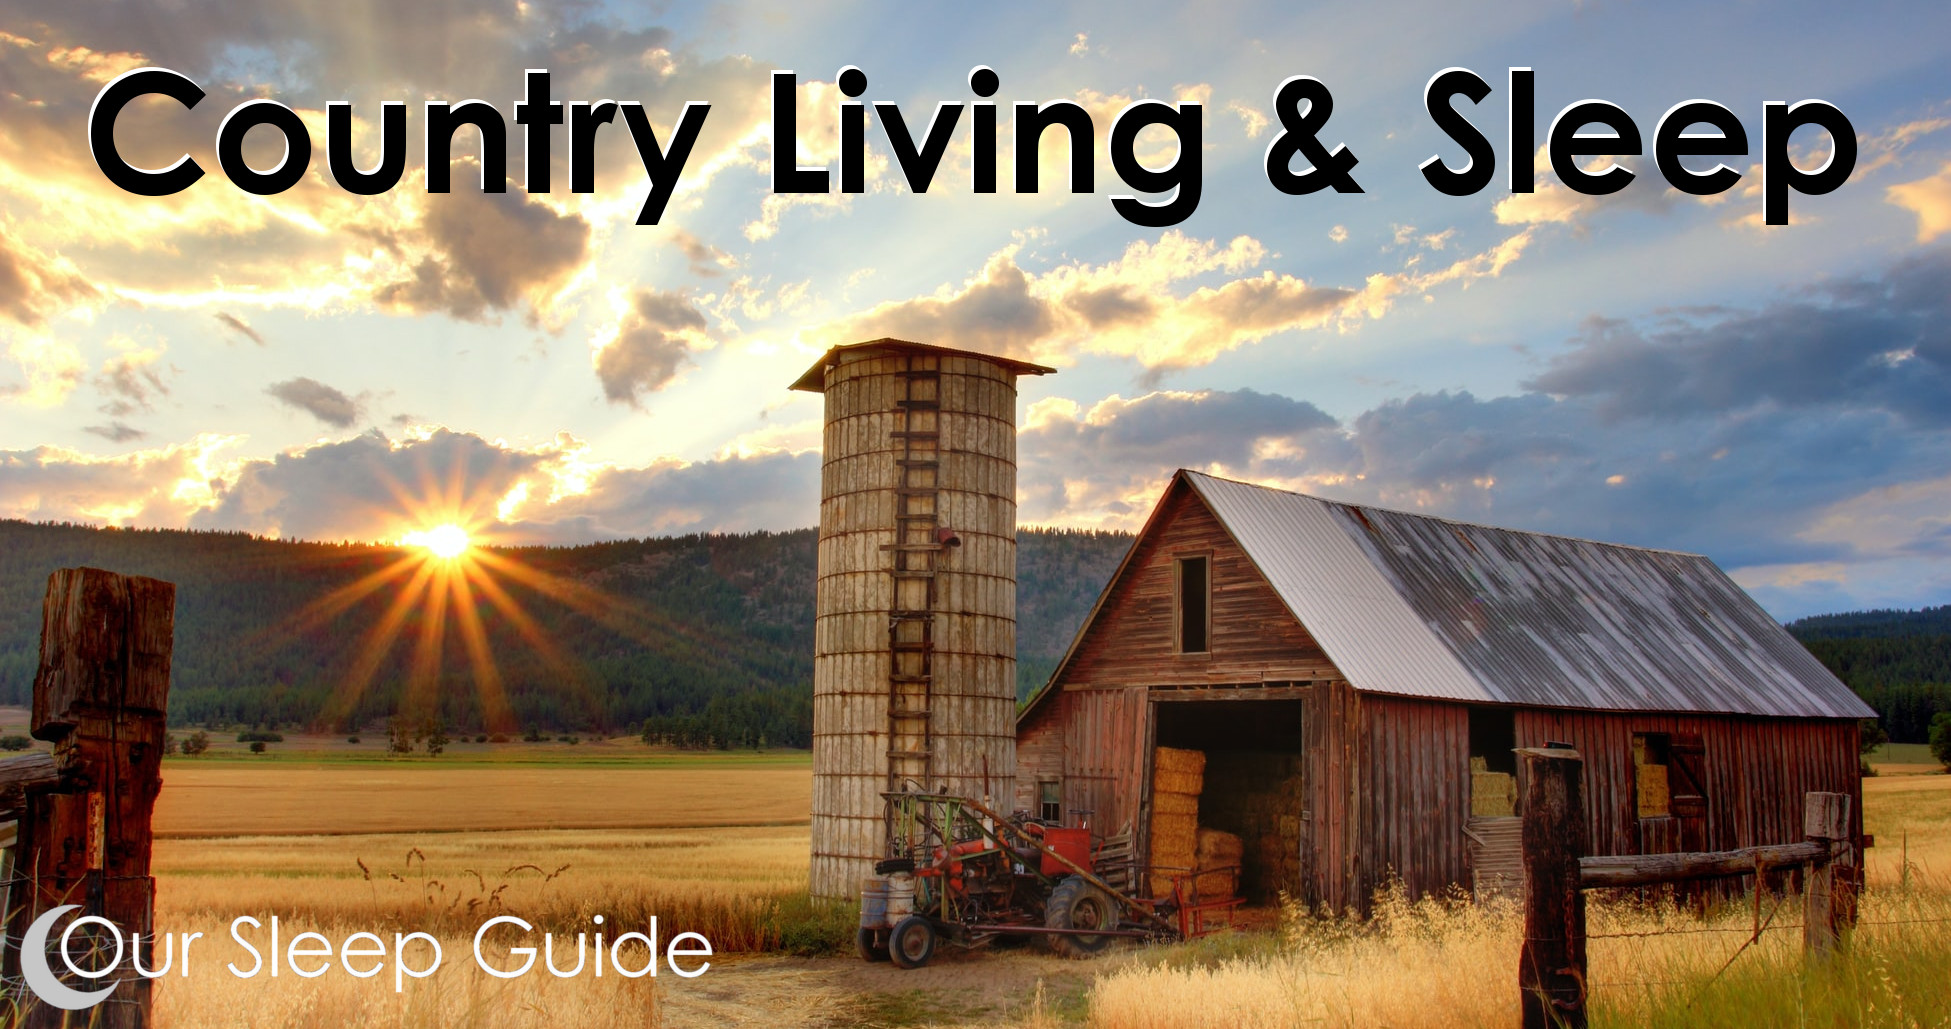 Country Living & Sleep